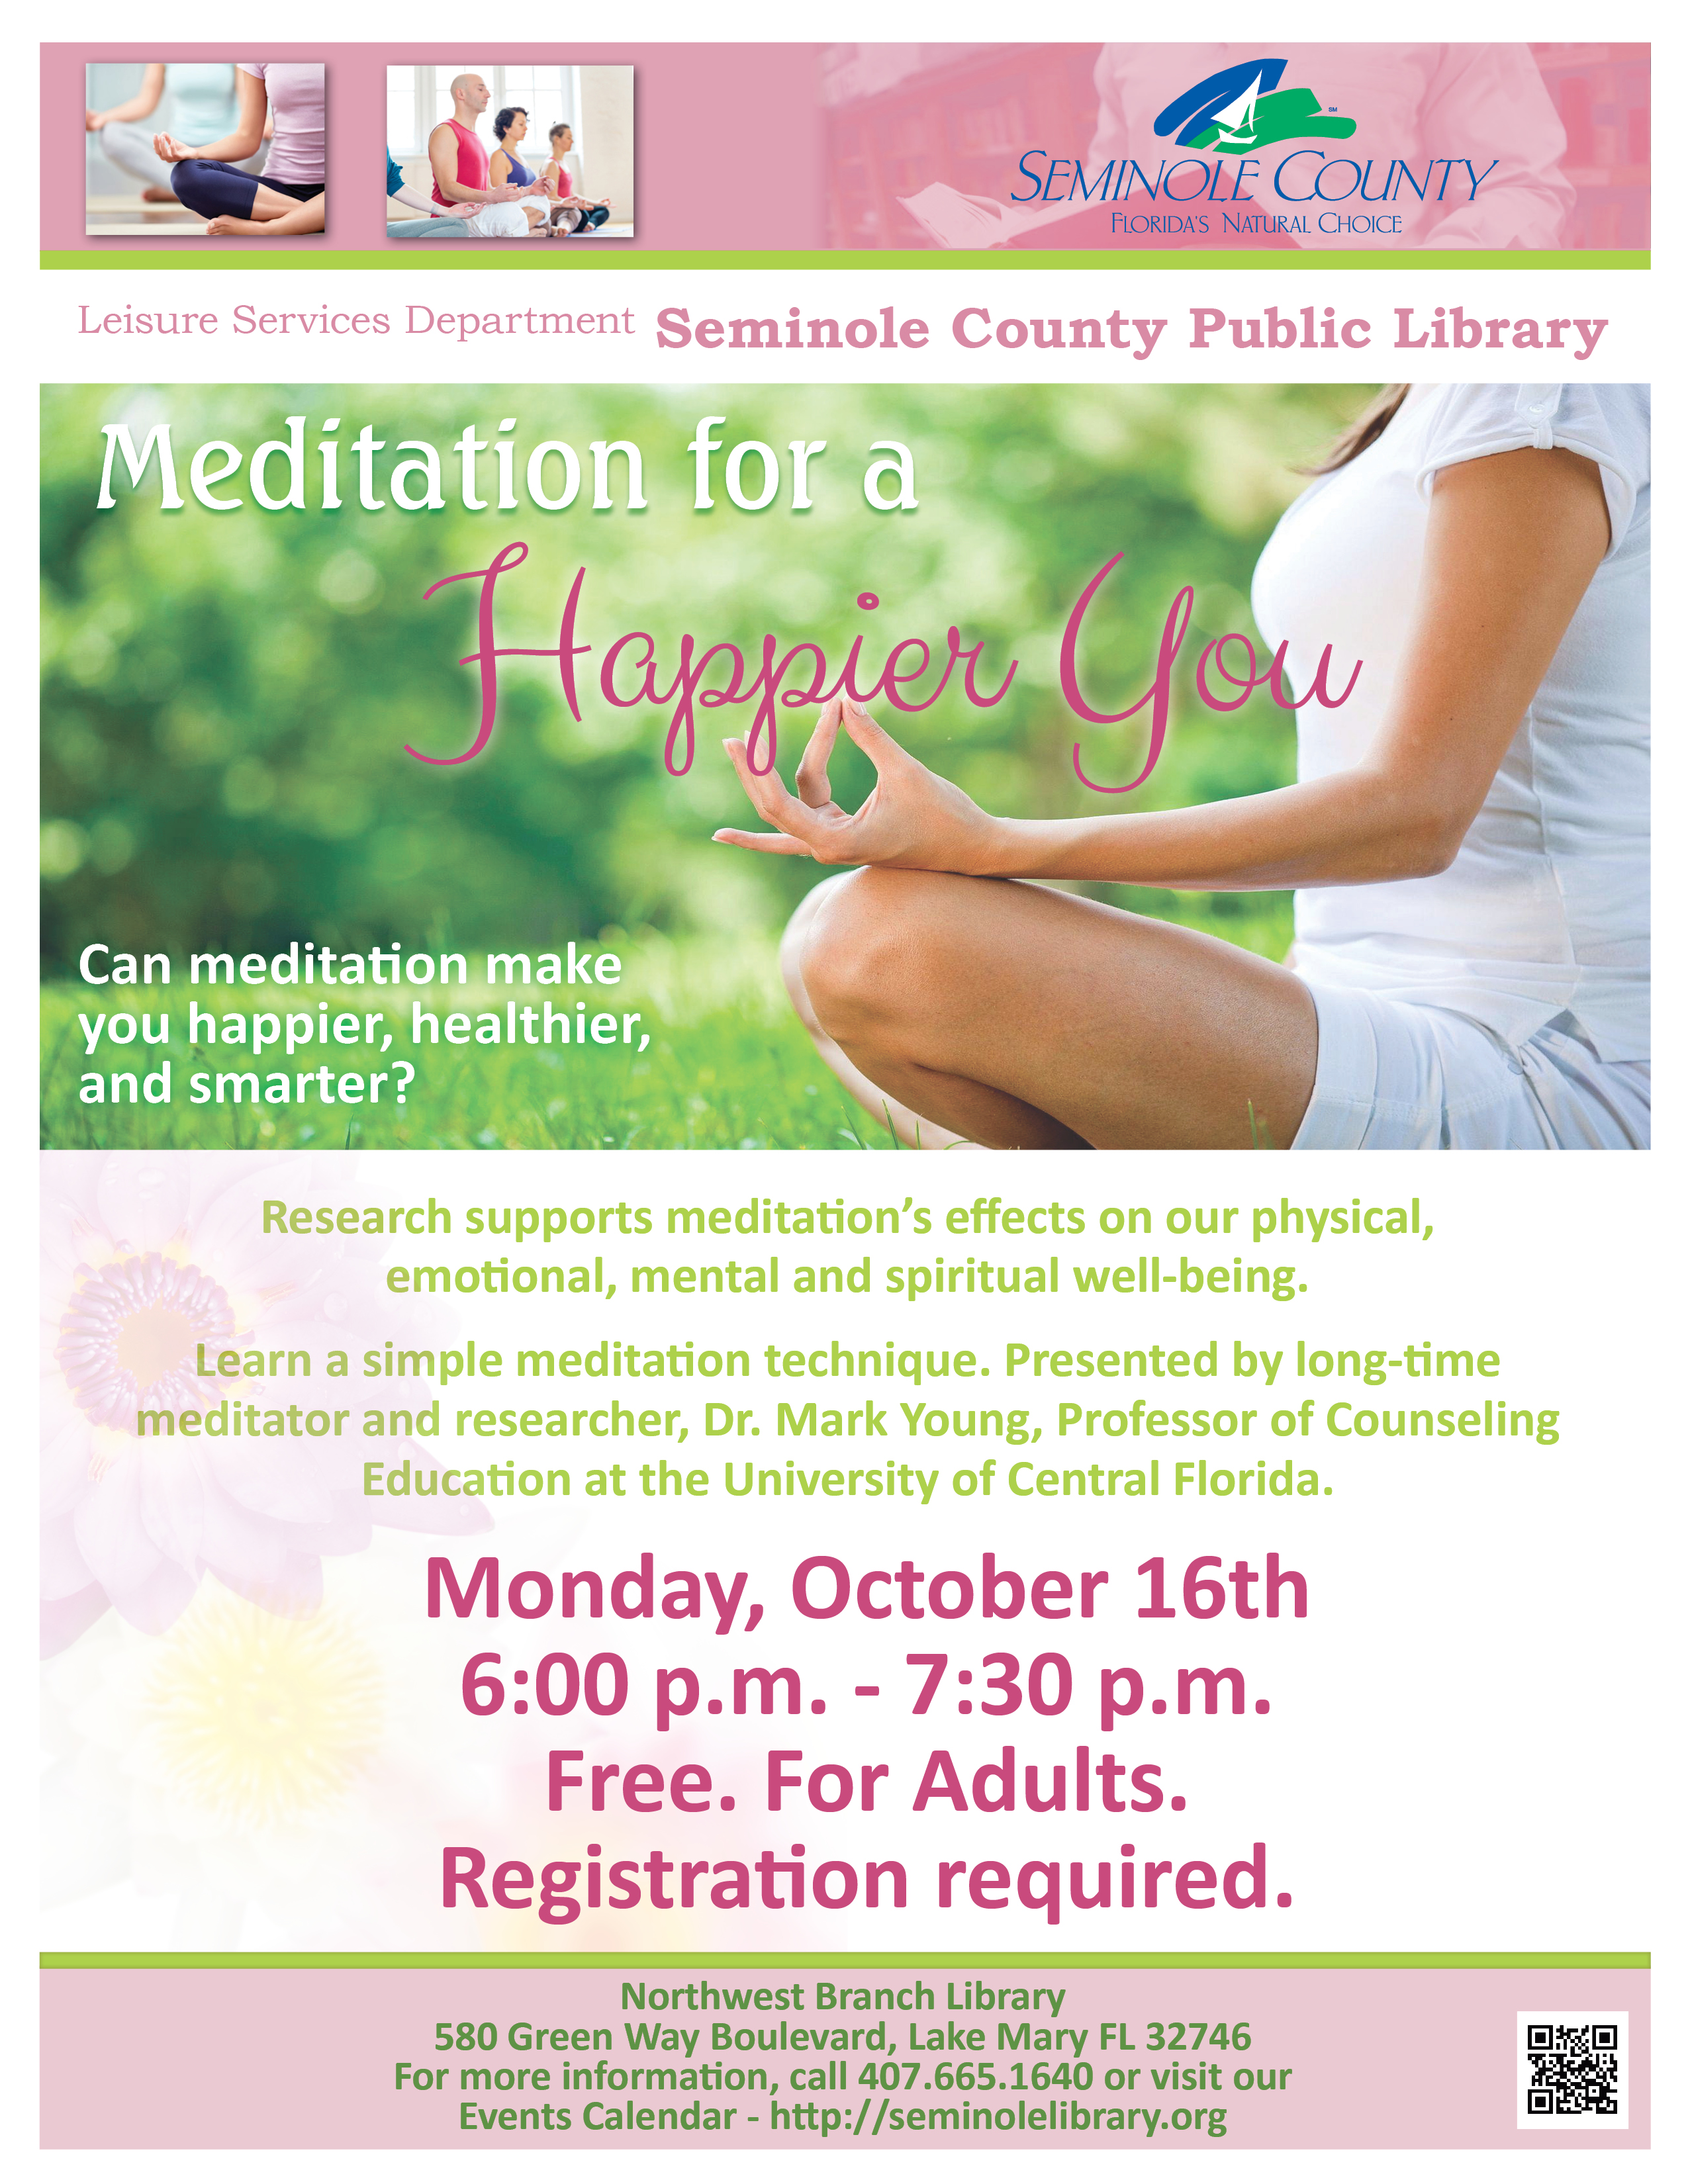 Meditation for a Happier You @ Northwest Branch Library (Lake Mary)